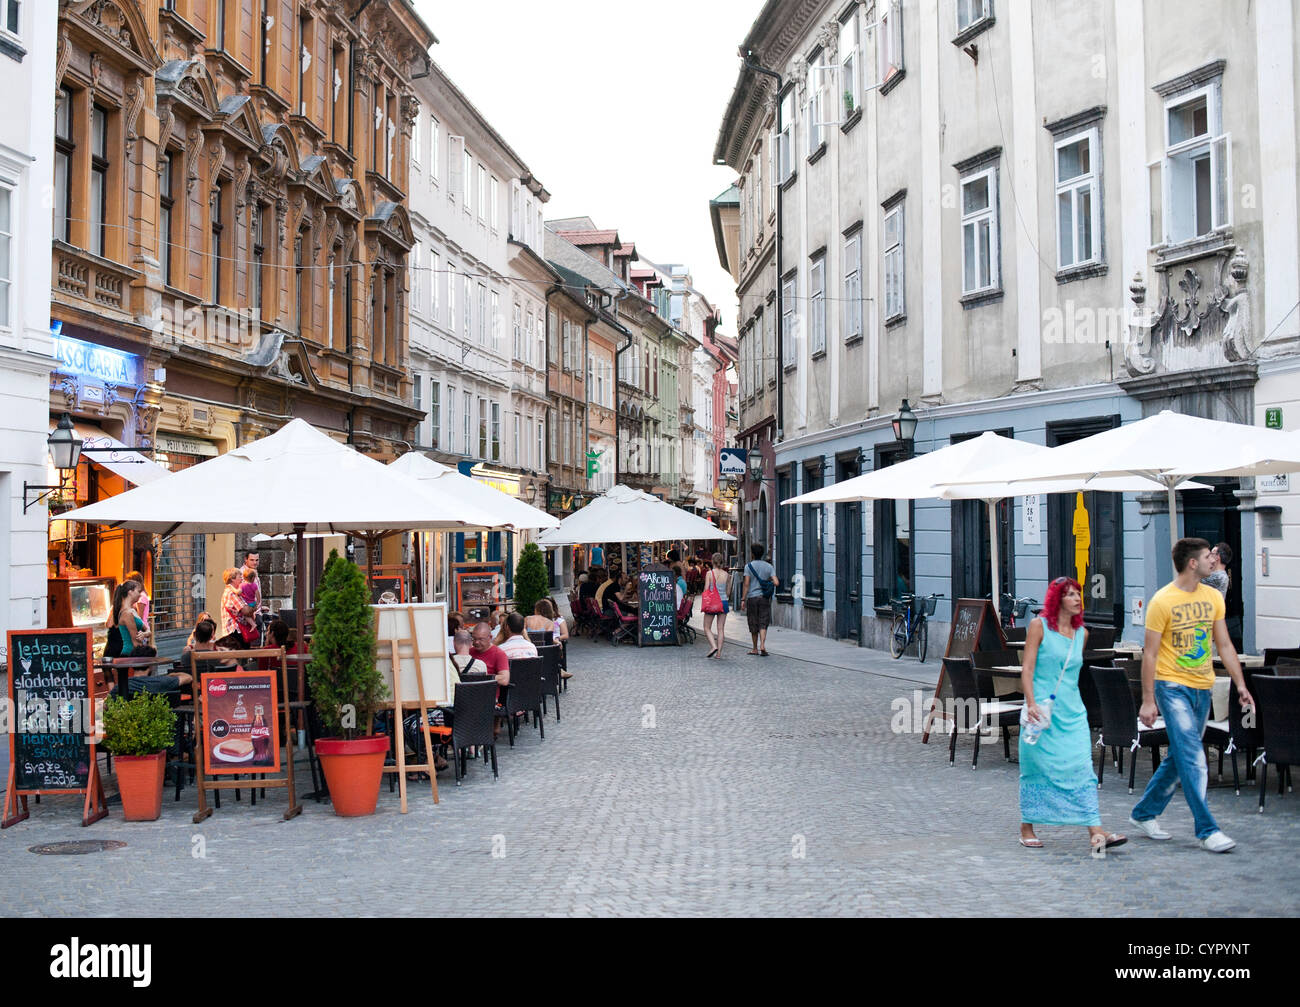 Sidewalk cafes in the old town in Ljubljana, the capital of Slovenia. - Stock Image